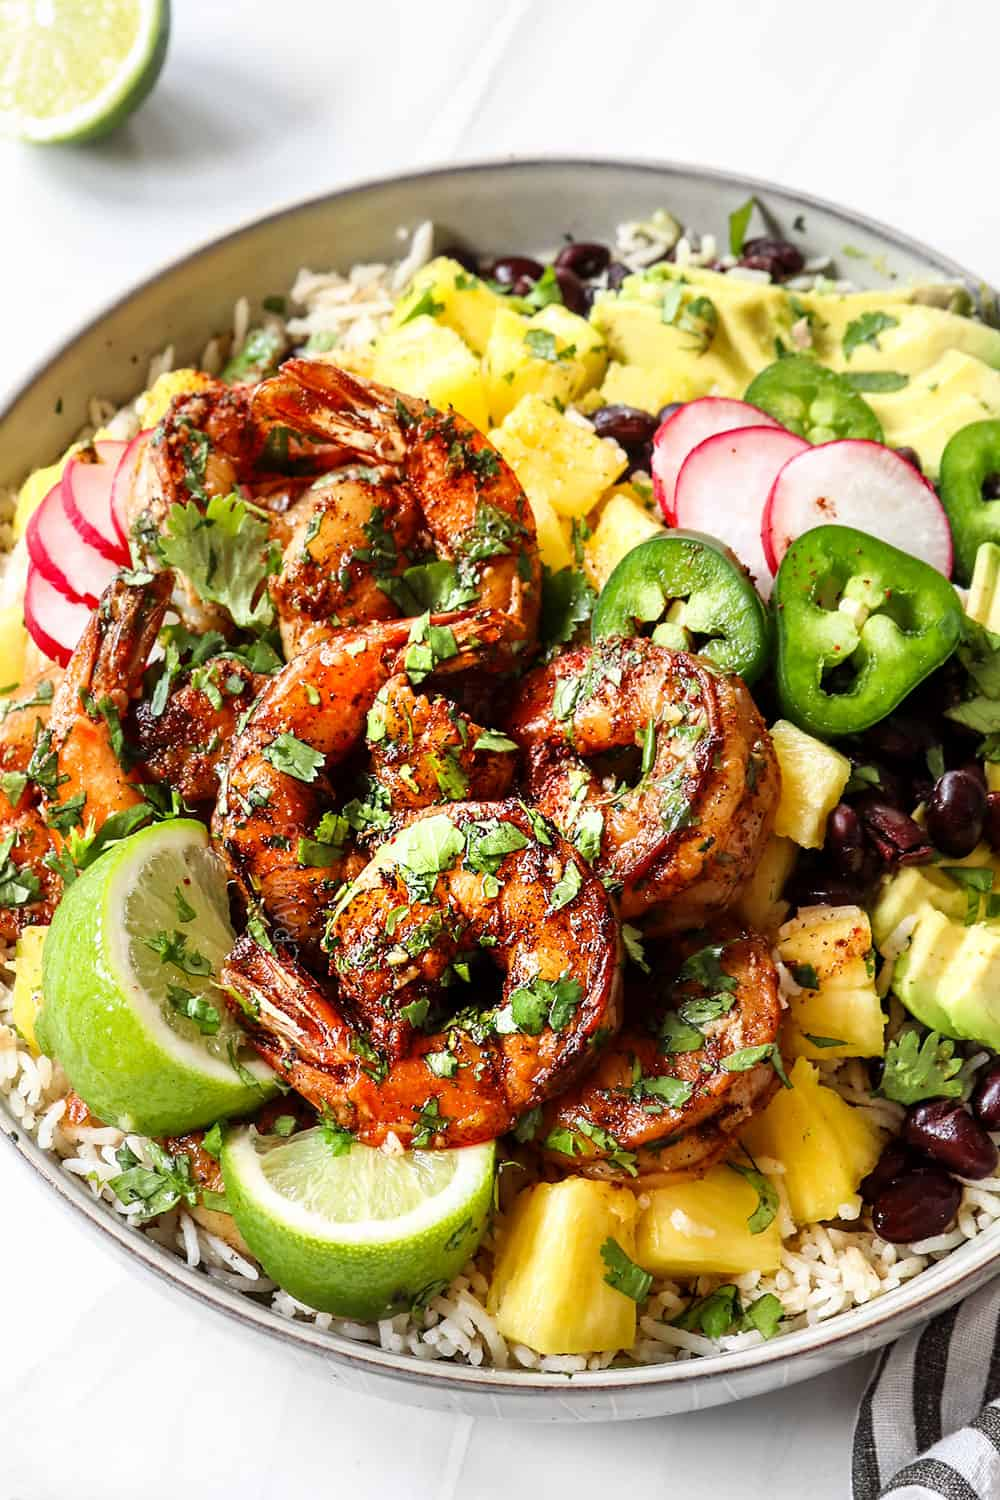 cilantro lime shrimp in a bowl garnished with cilantro and lime